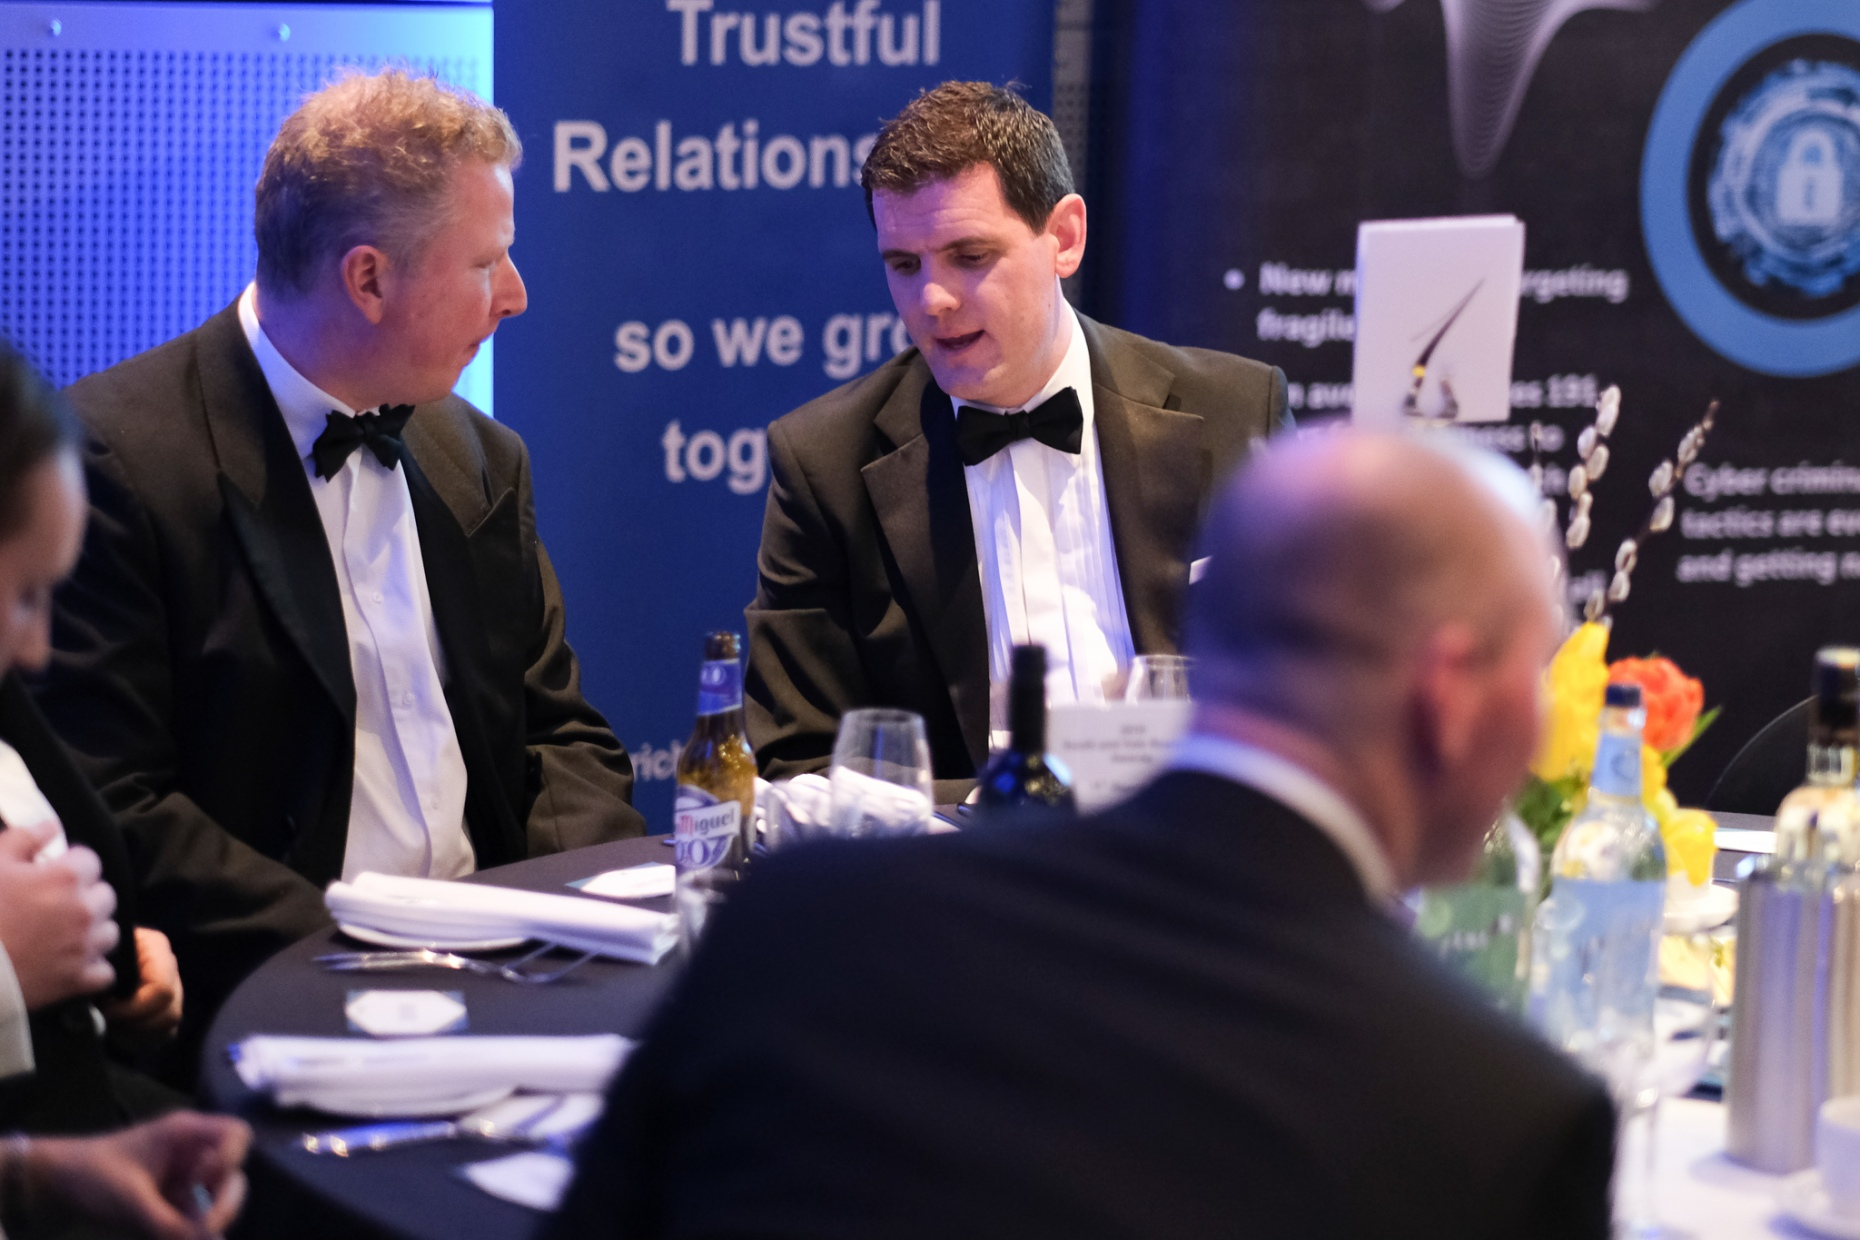 SVBA Business Awards 2019 Social Media Format (82 of 166)